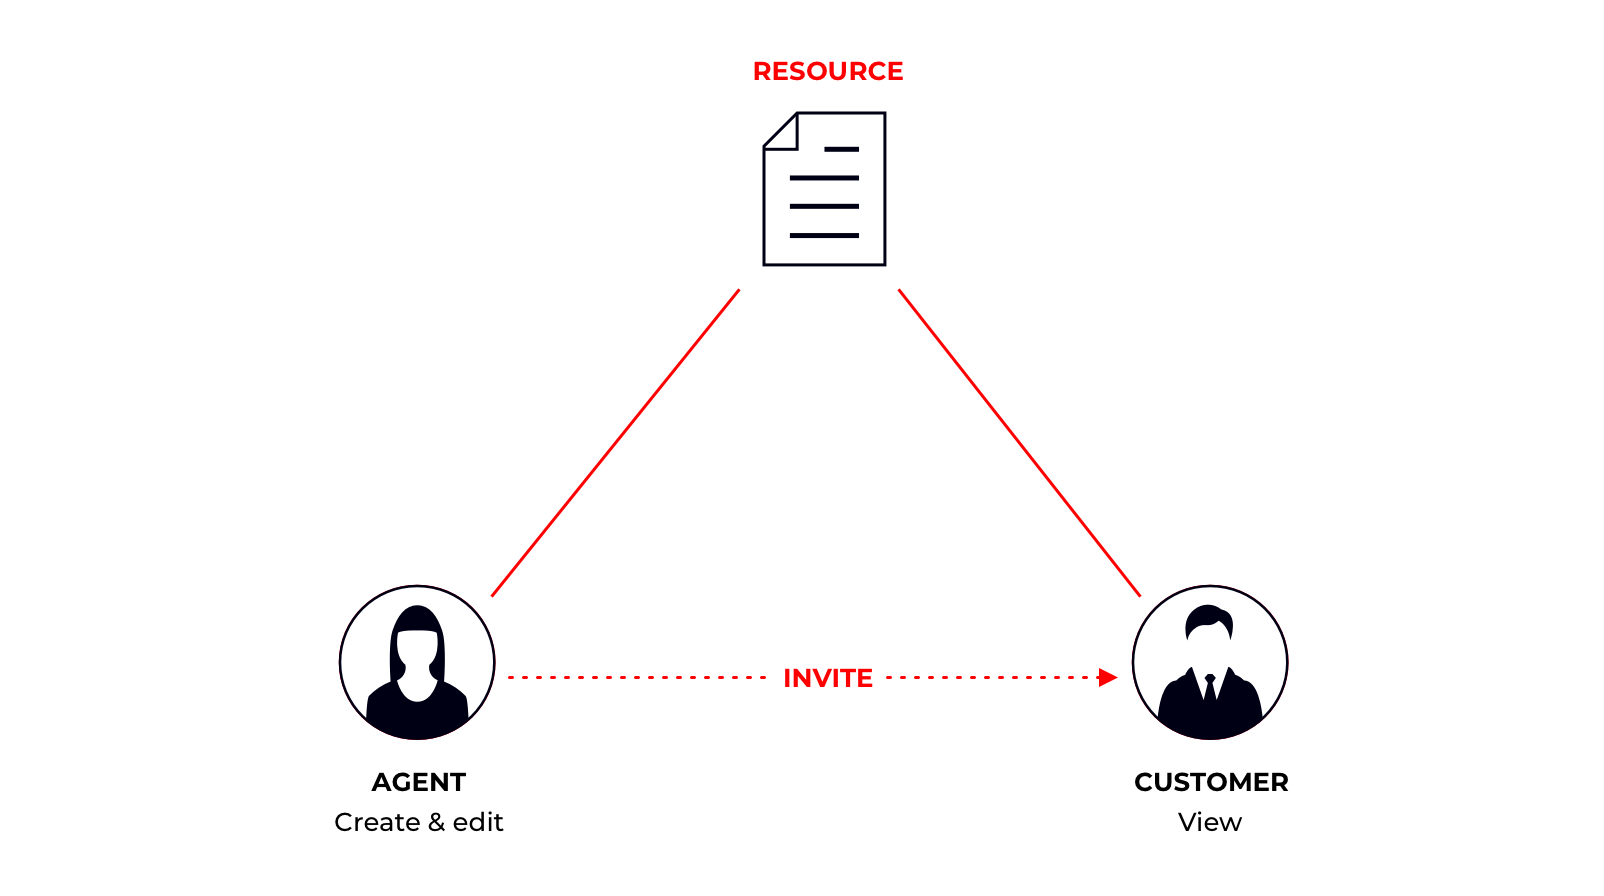 Relationship-based access control